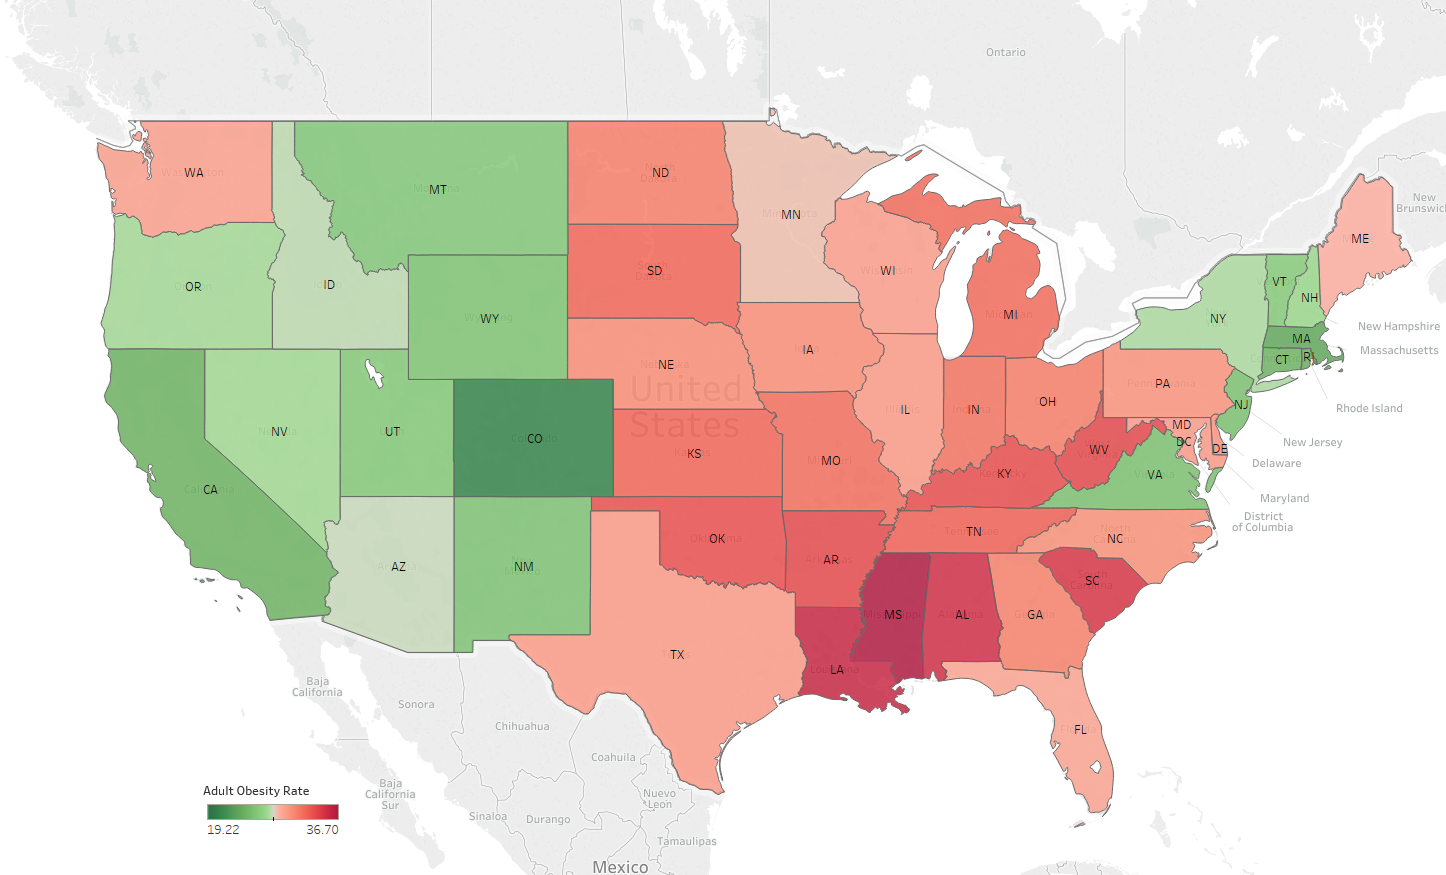 Figure 2: Obesity Rate across USA